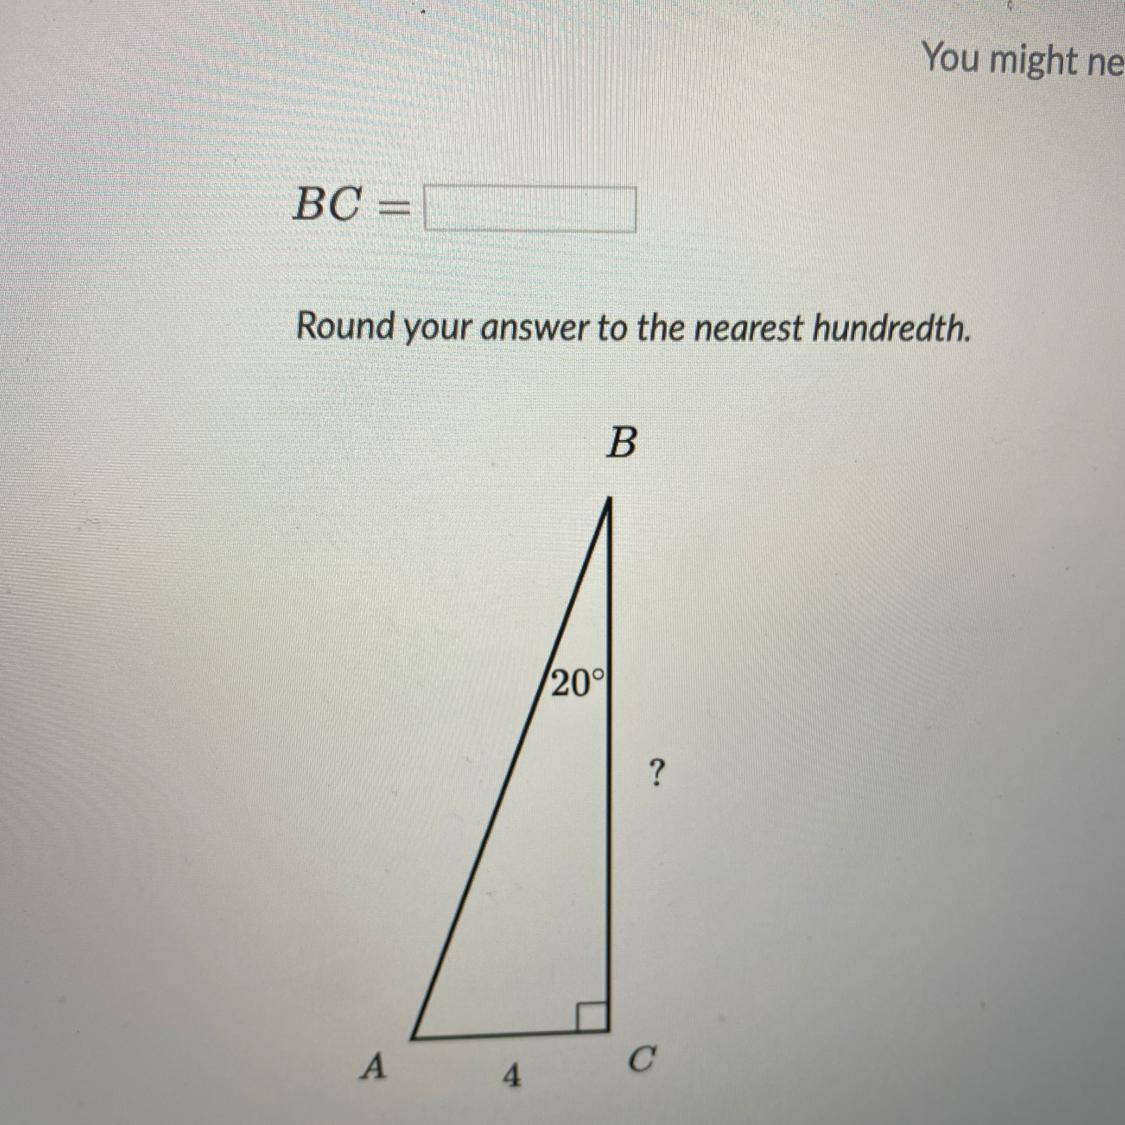 Bc Round Your Answer To The Nearest Hundredth B 20 A